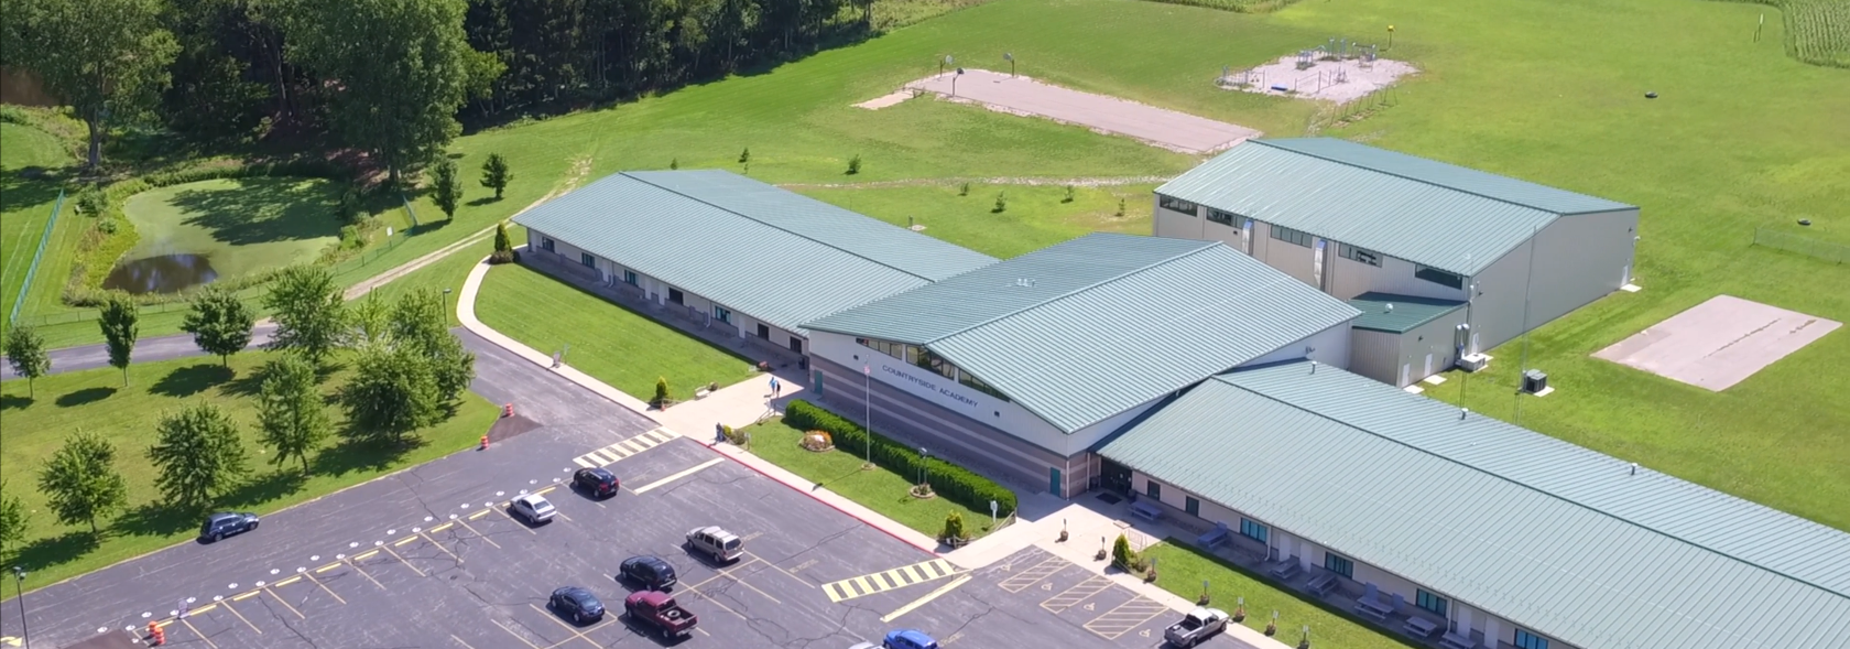 Aerial Photo of Countryside Academy